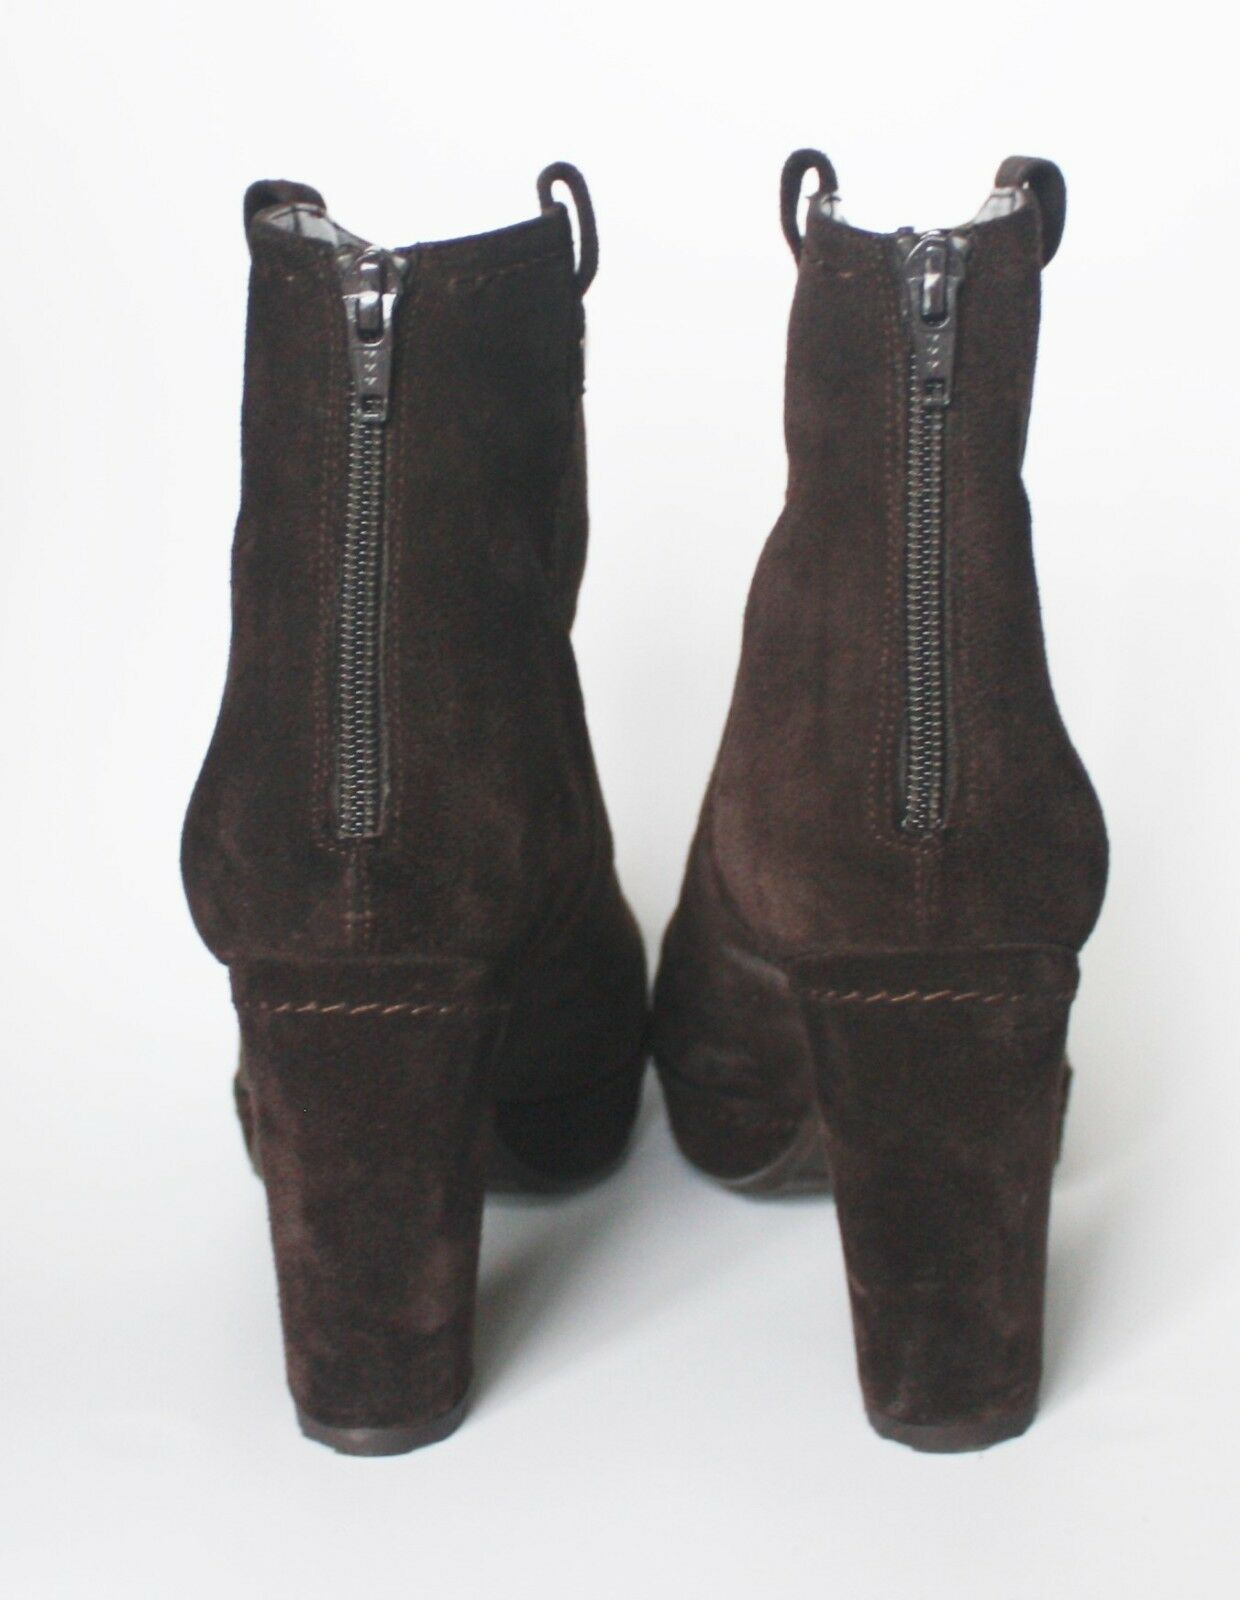 STUART WEITZMAN HIPGAL SUEDE ANKLE BOOTS BOOTS BOOTS 39 9  594 Brown Platform Booties shoes a0f05e